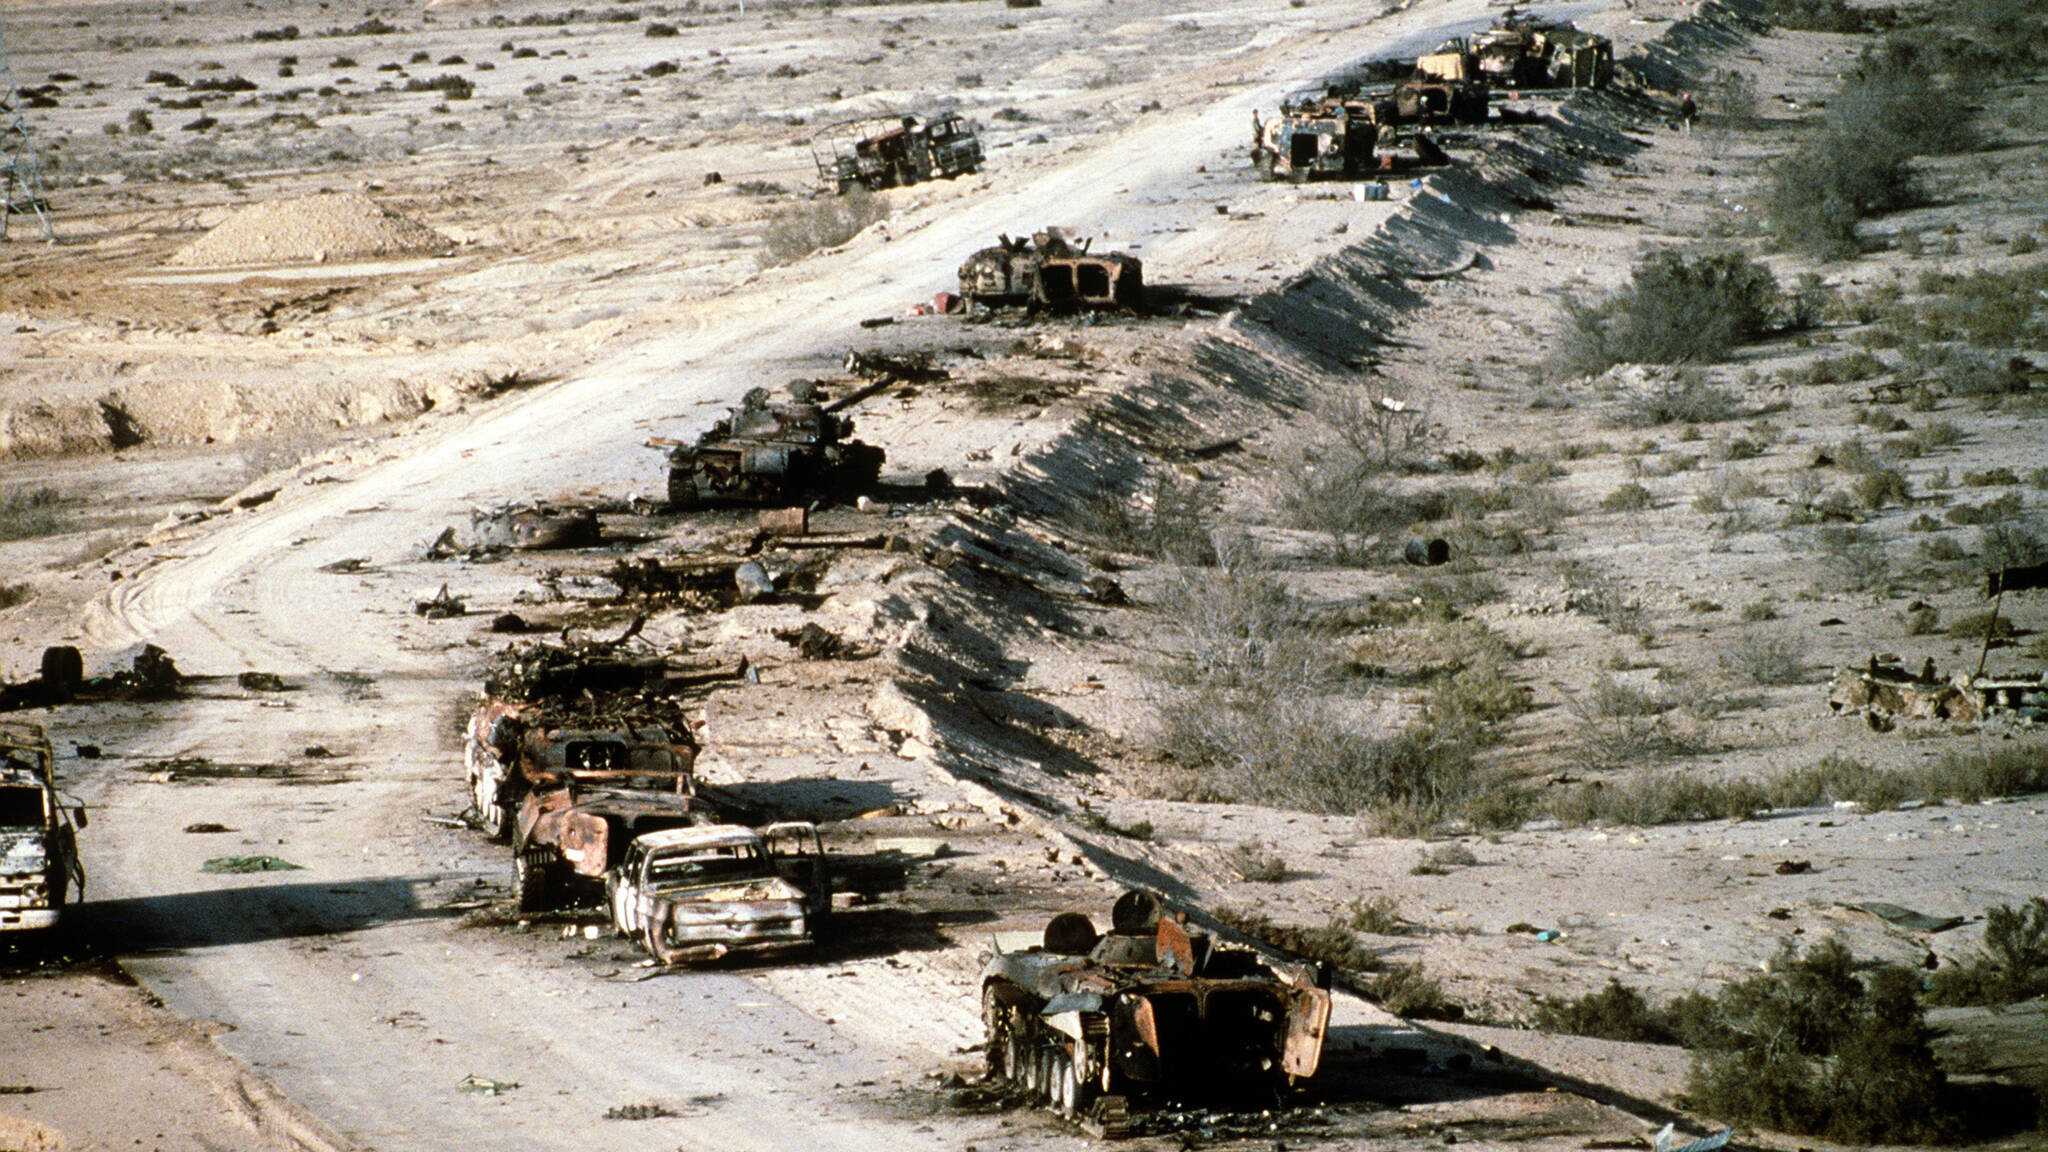 Destroyed Iraqi tanks and vehicles after Highway of Death attack, United States military photo